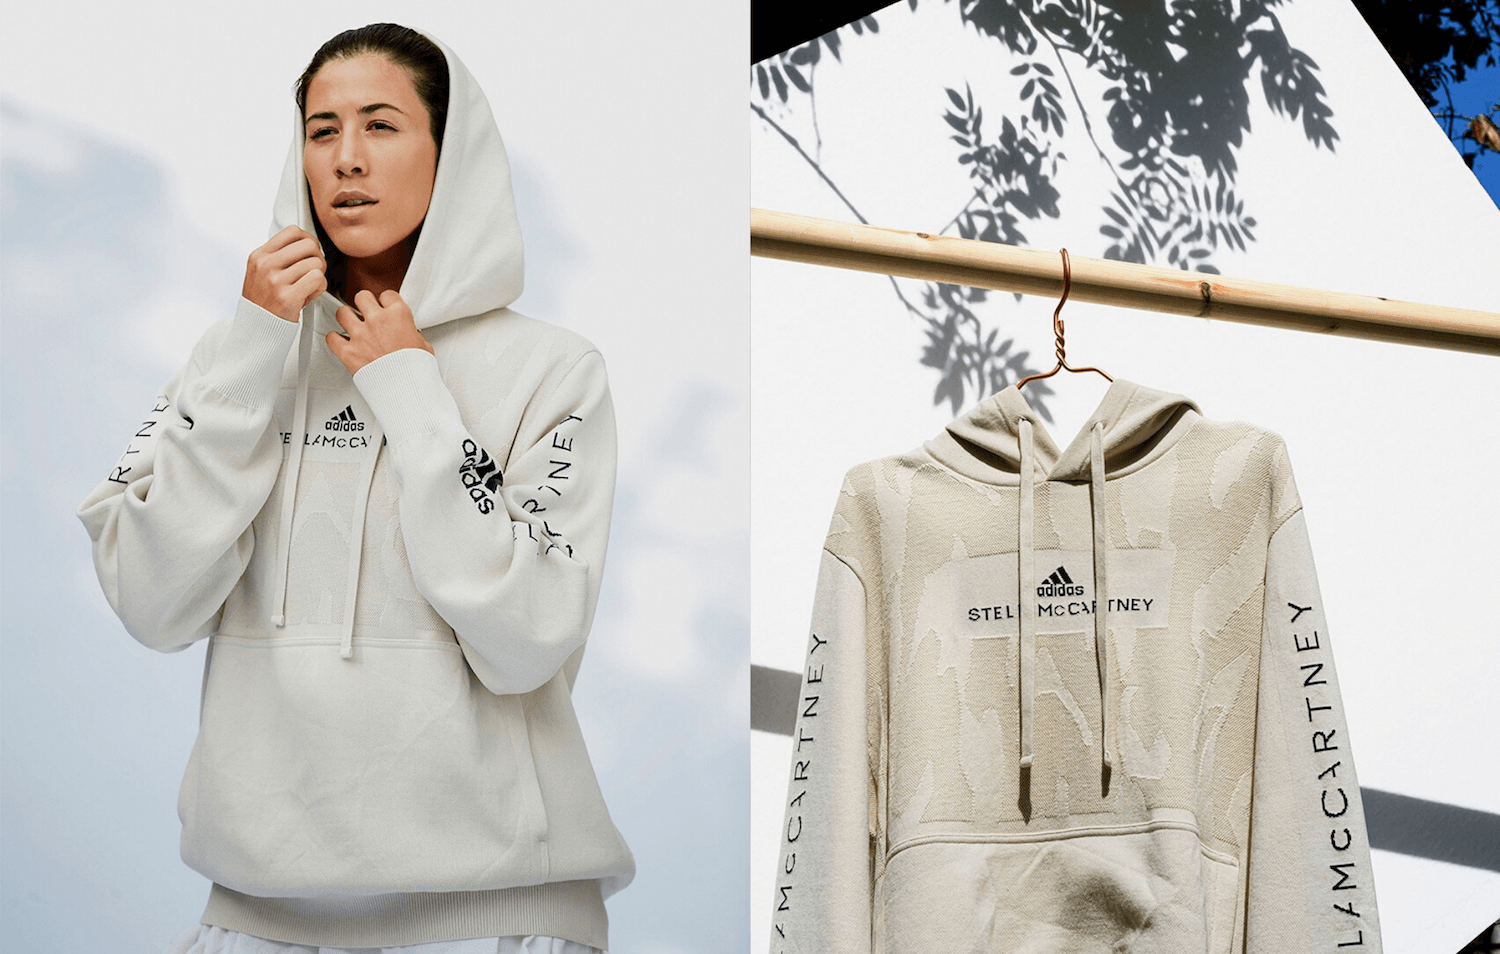 sustainable fashion 2019 stella mc cartney adidas nucycl